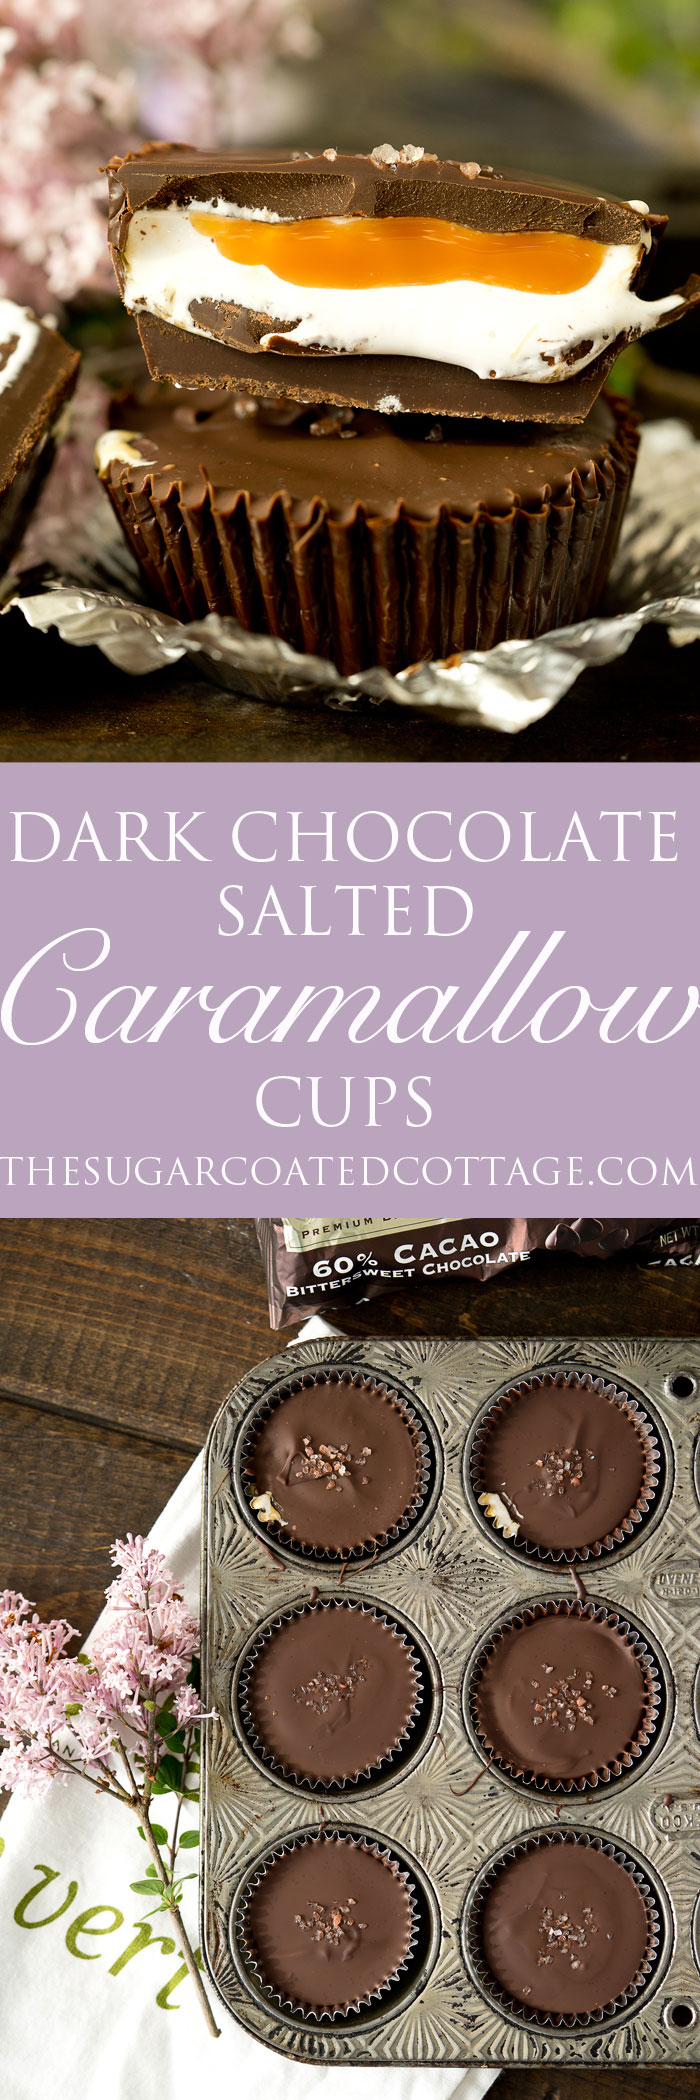 Dark Chocolate Salted Caramallow Cups